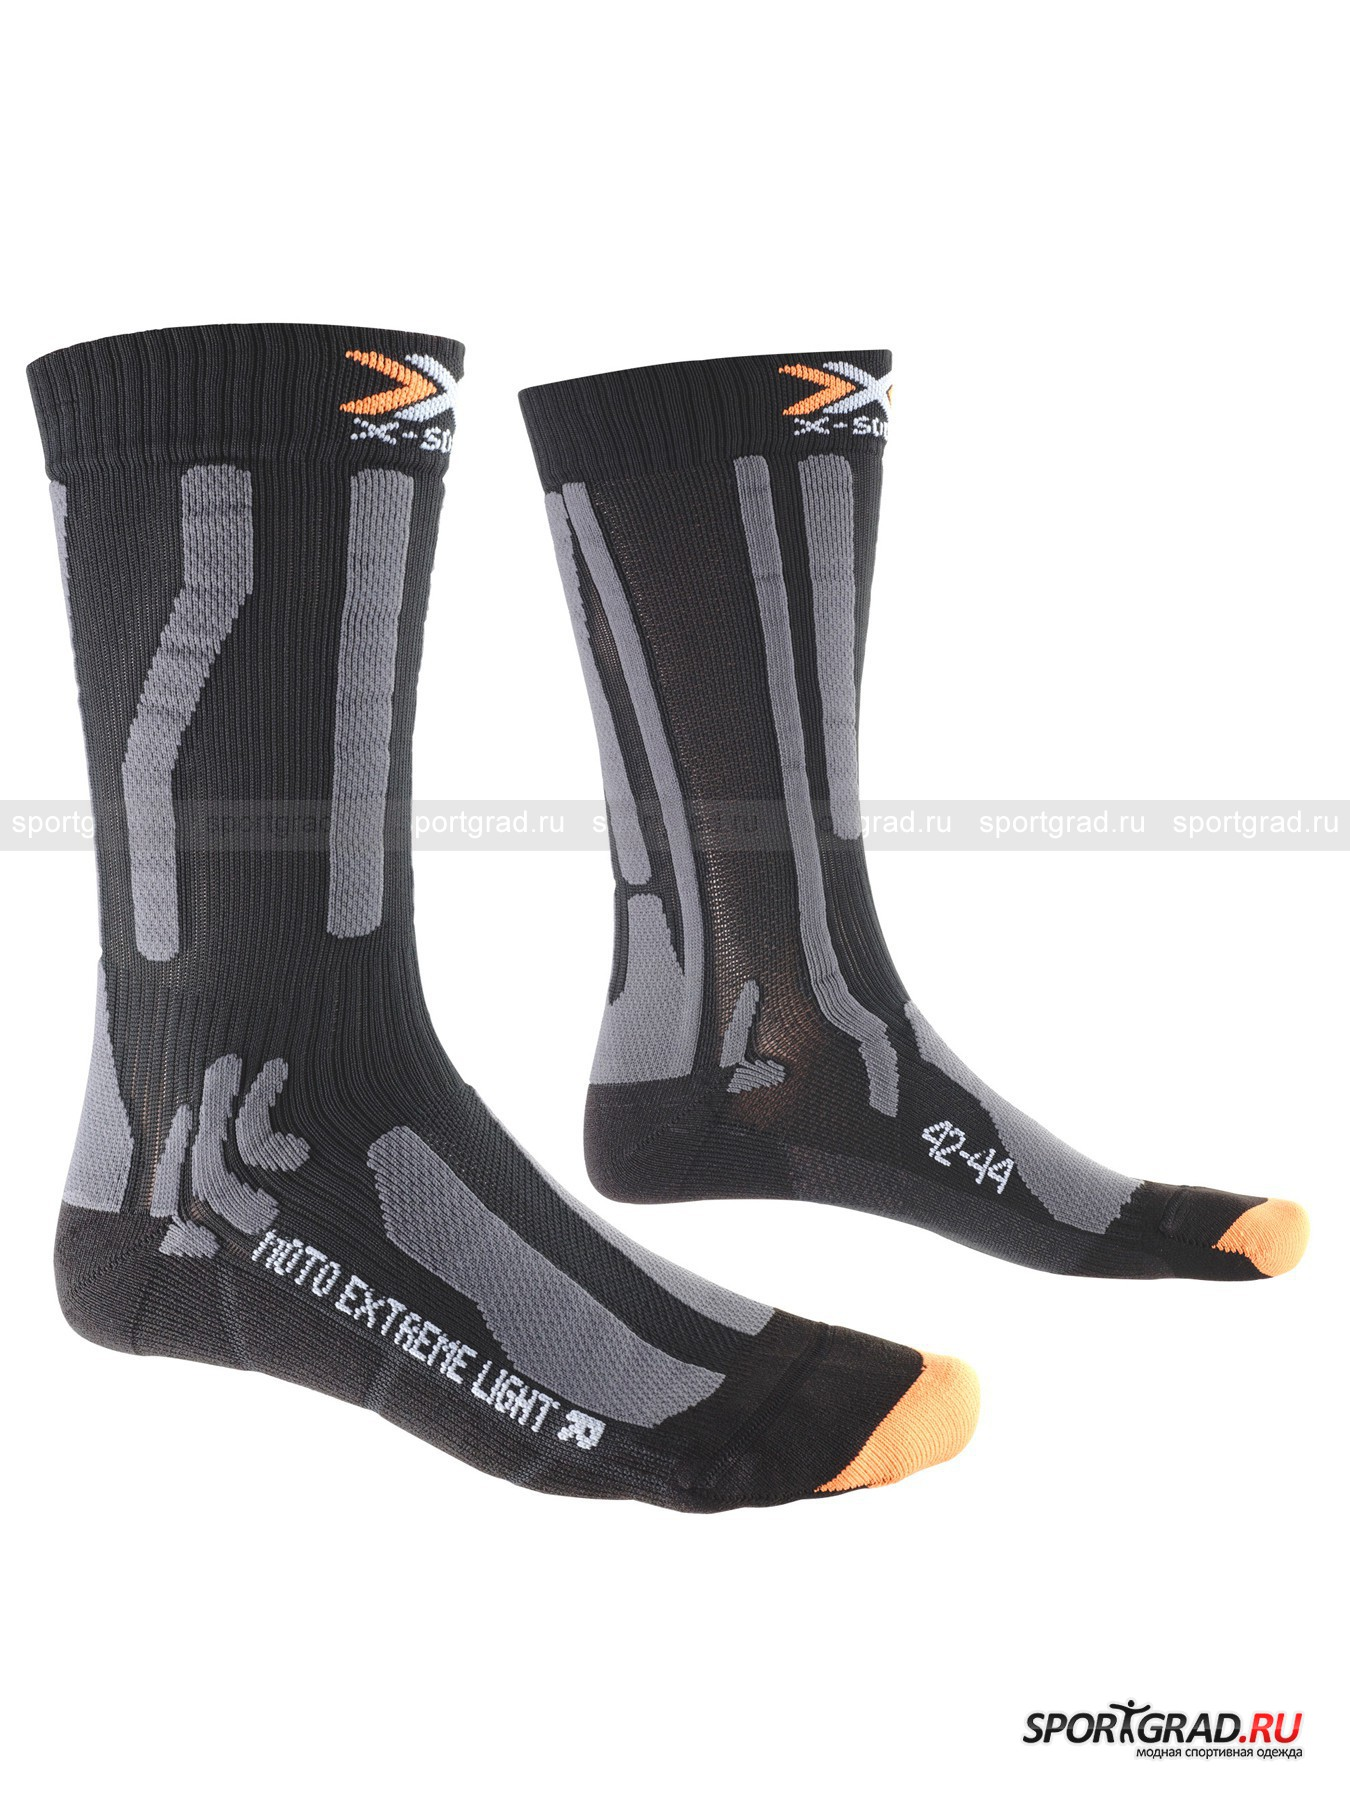 ���������� �� ������ ����� ���� ������� MOTO EXTREME LIGHT X-Socks